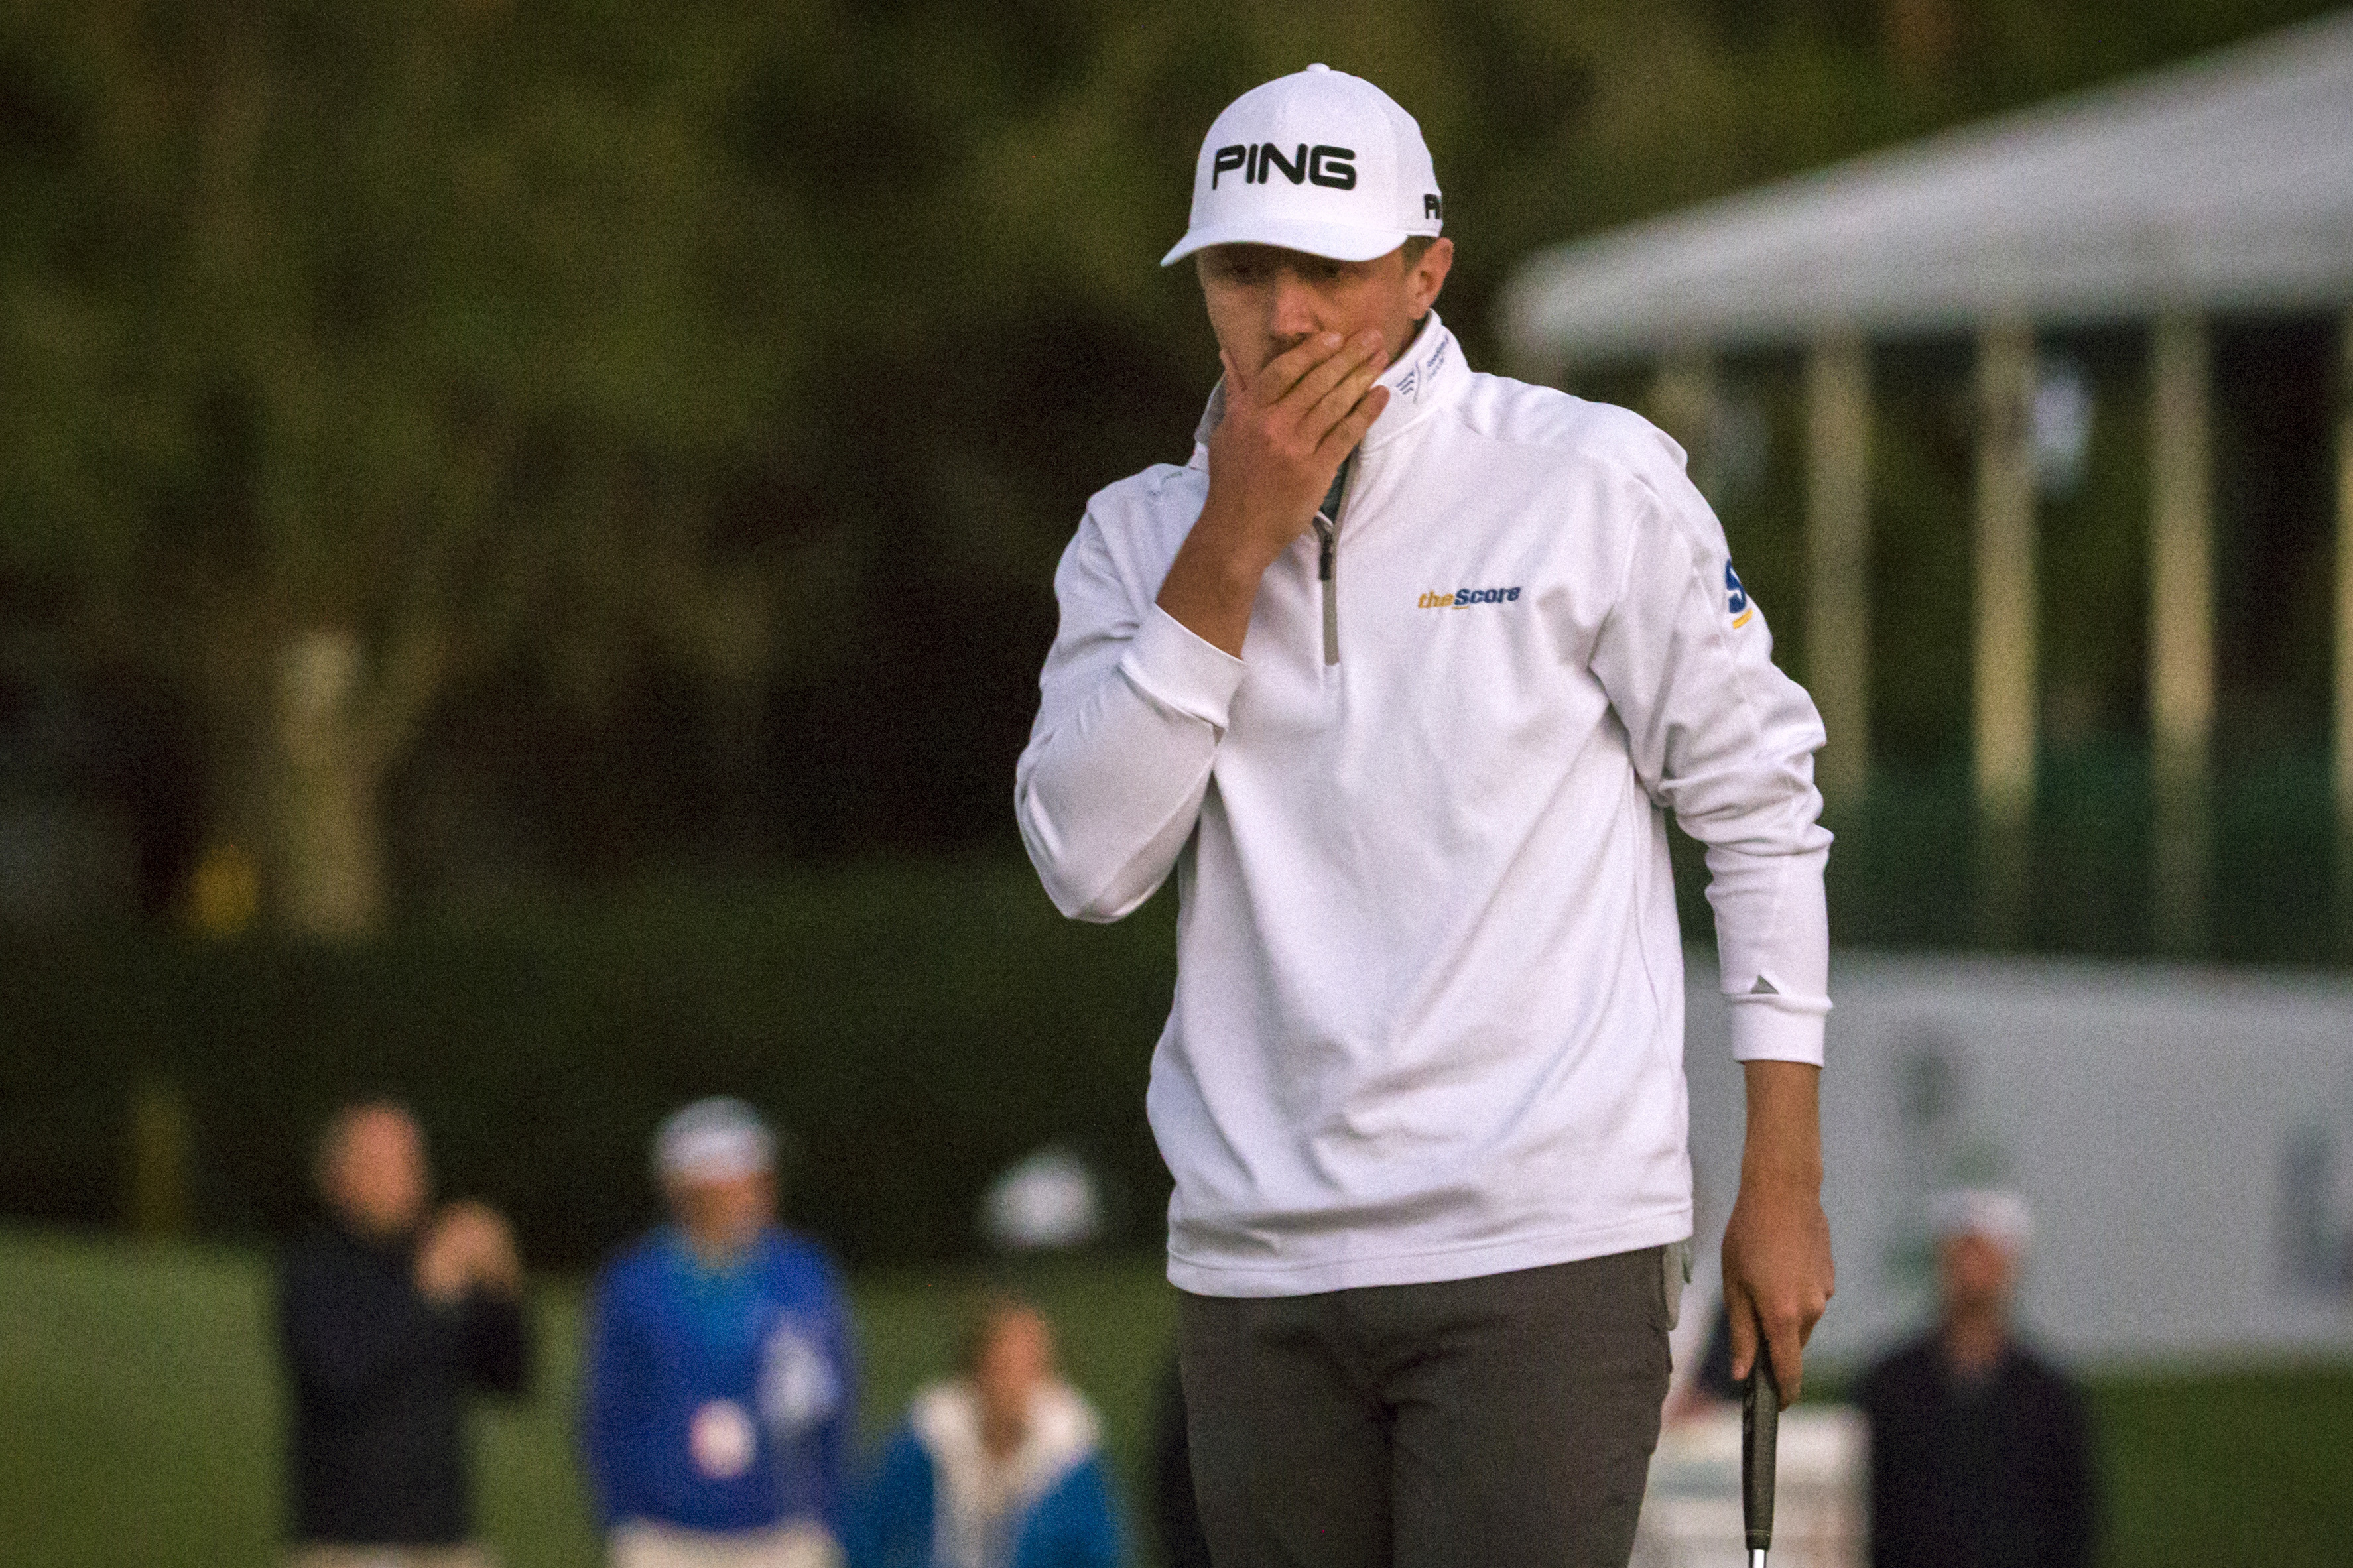 Mackenzie Hughes, of Canada, reacts to a missed birdie putt on the 18th green during second playoff of the final round at the RSM Classic golf tournament, Sunday, Nov. 20, 2016, in St. Simons Island, Ga. The day ended when play was suspended due to darkne